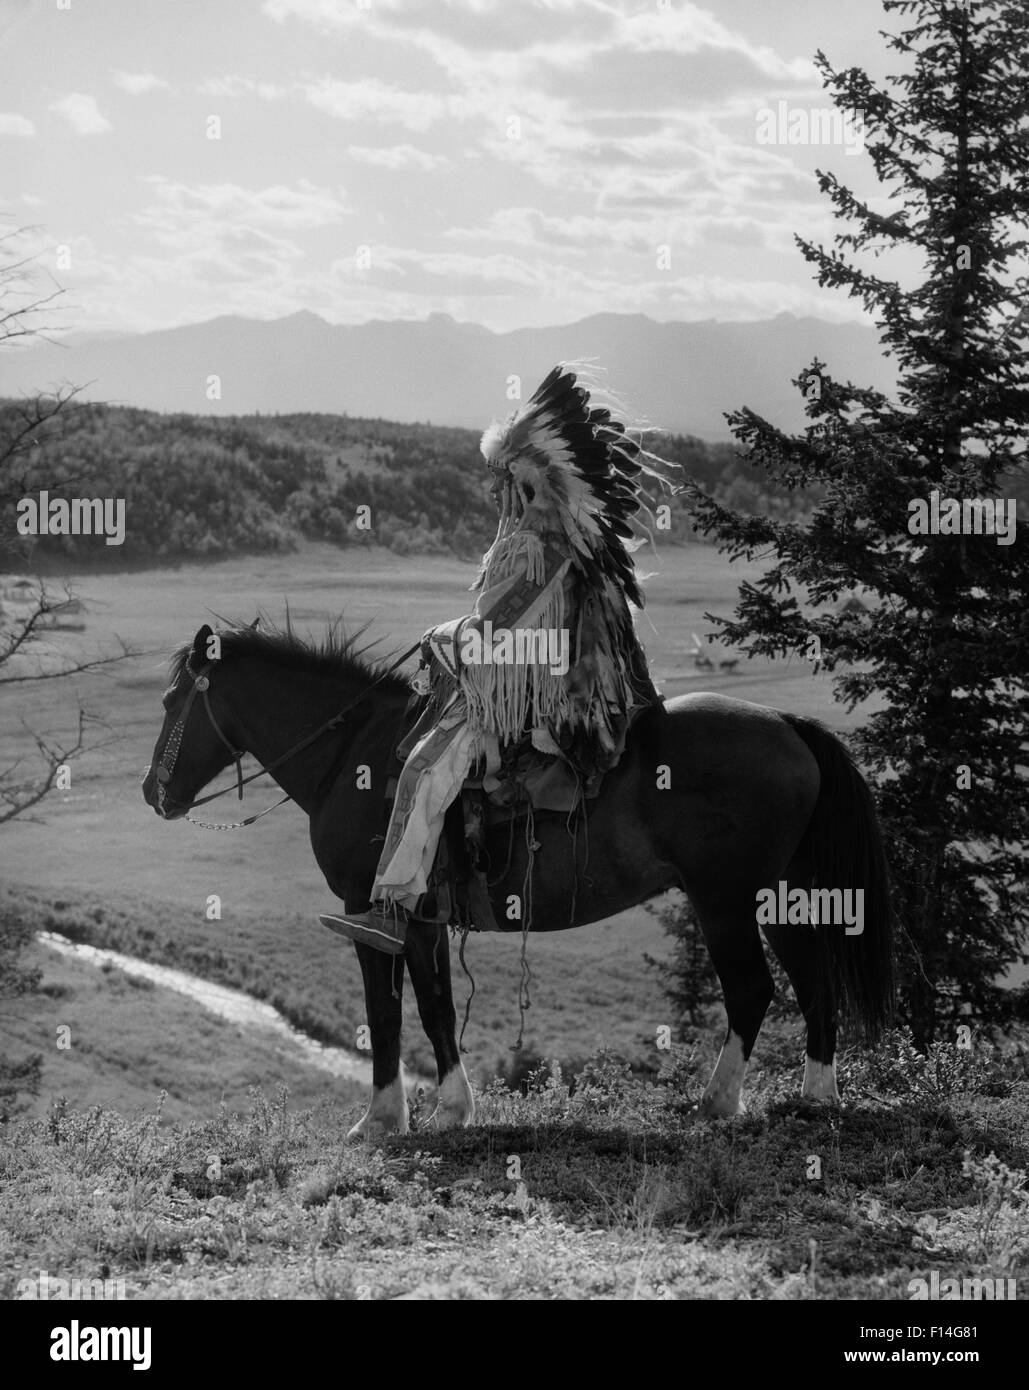 1920s NATIVE AMERICAN STONEY SIOUX MAN FULL EAGLE FEATHER HEADDRESS ON HORSEBACK LOOKING OVER VALLEY ALBERTA CANADA - Stock Image